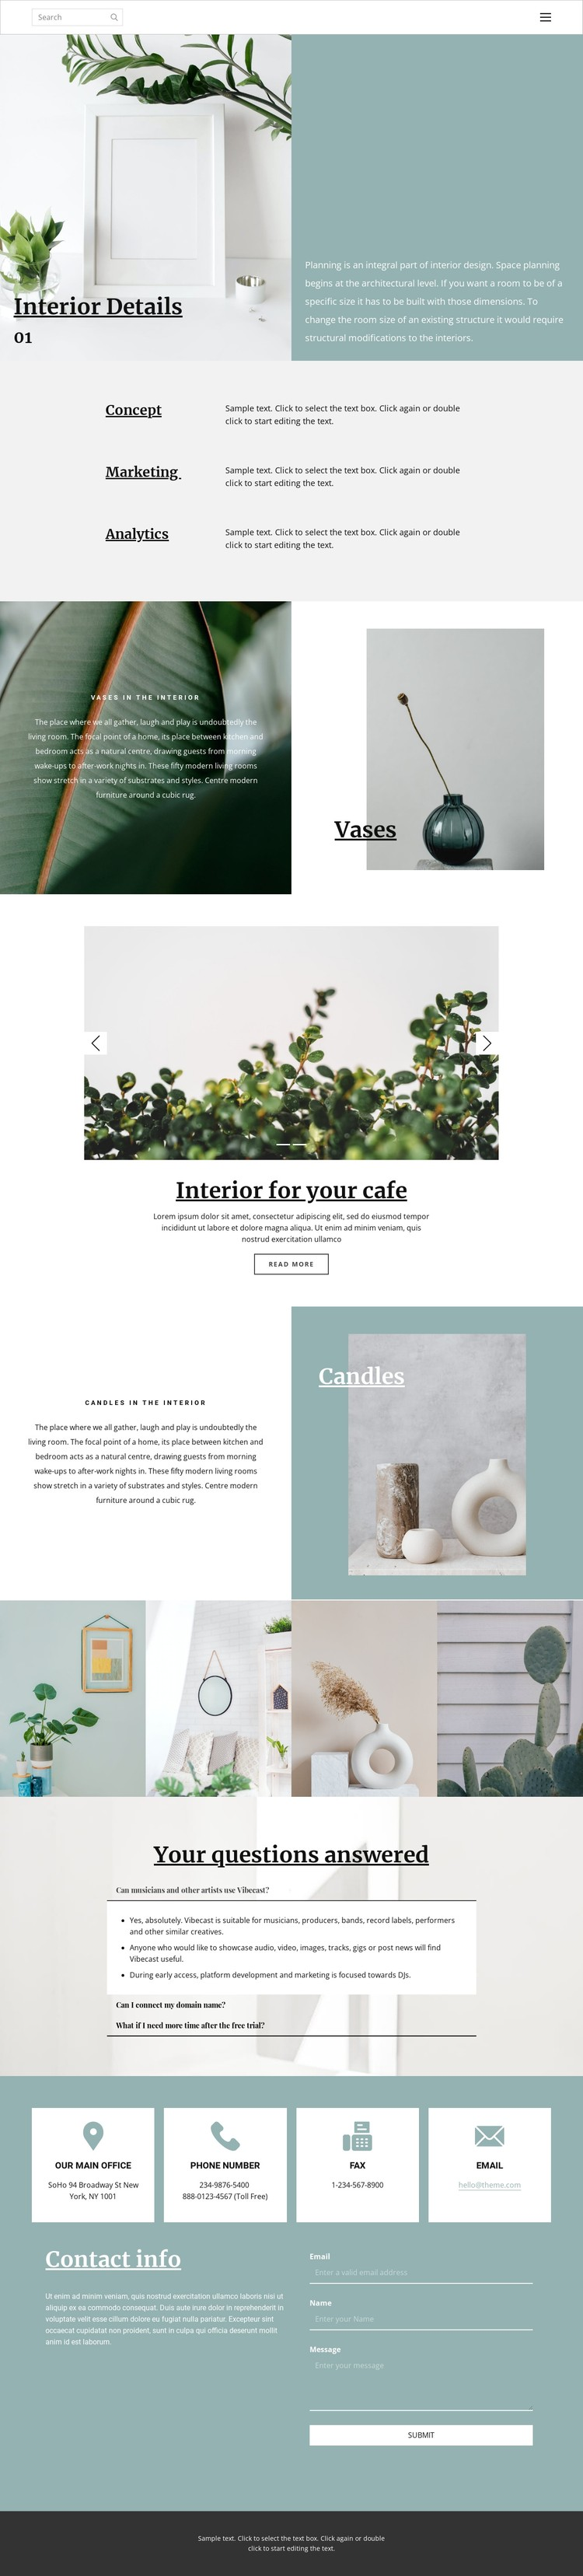 Help in organizing the space at home CSS Template